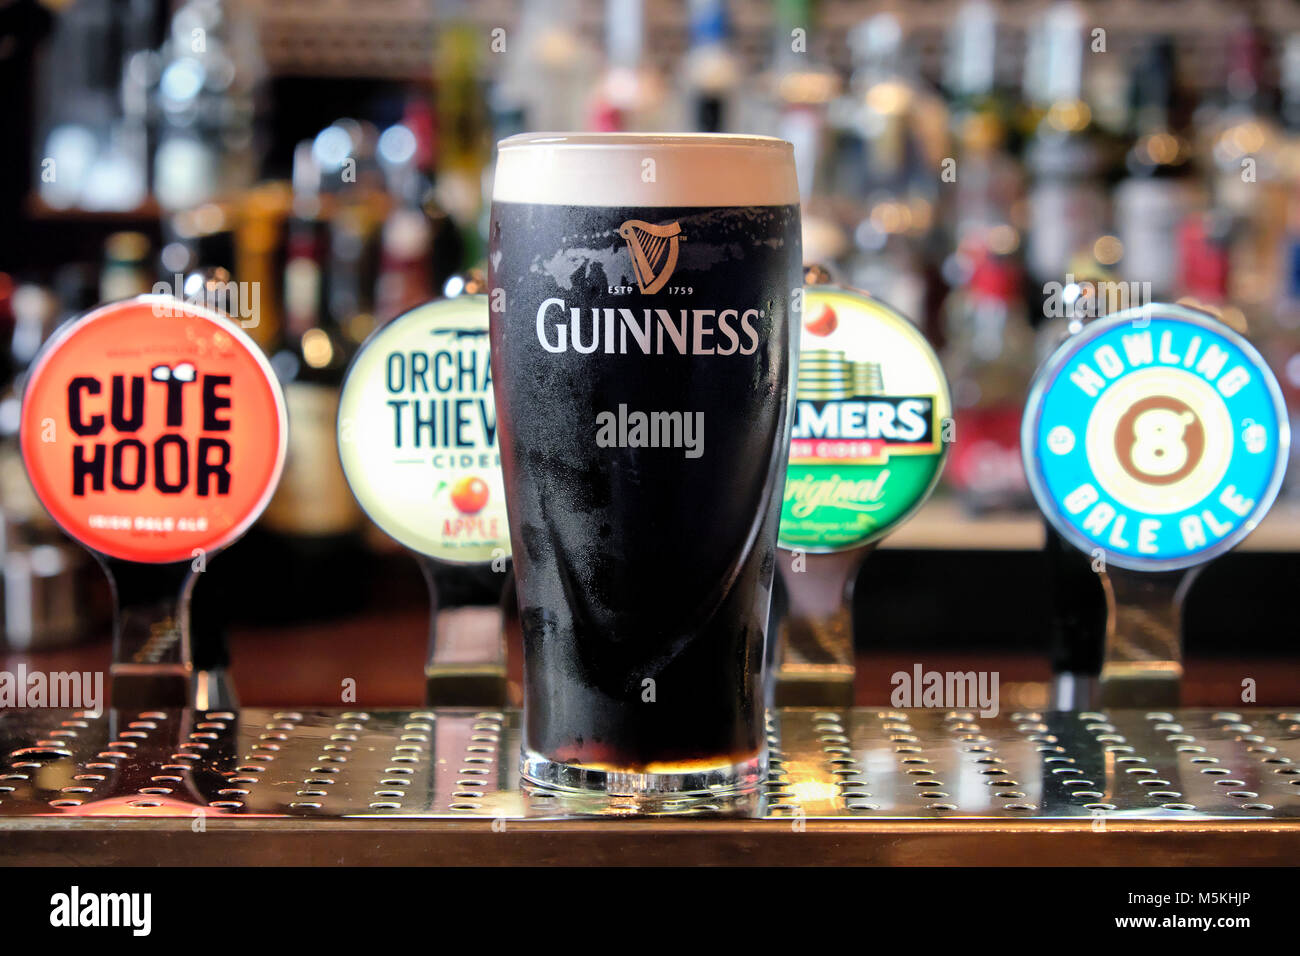 Pint of Guinness in front of different ale and beer pumps, The Merchant's Arch Bar & Restaurant, Temple - Stock Image